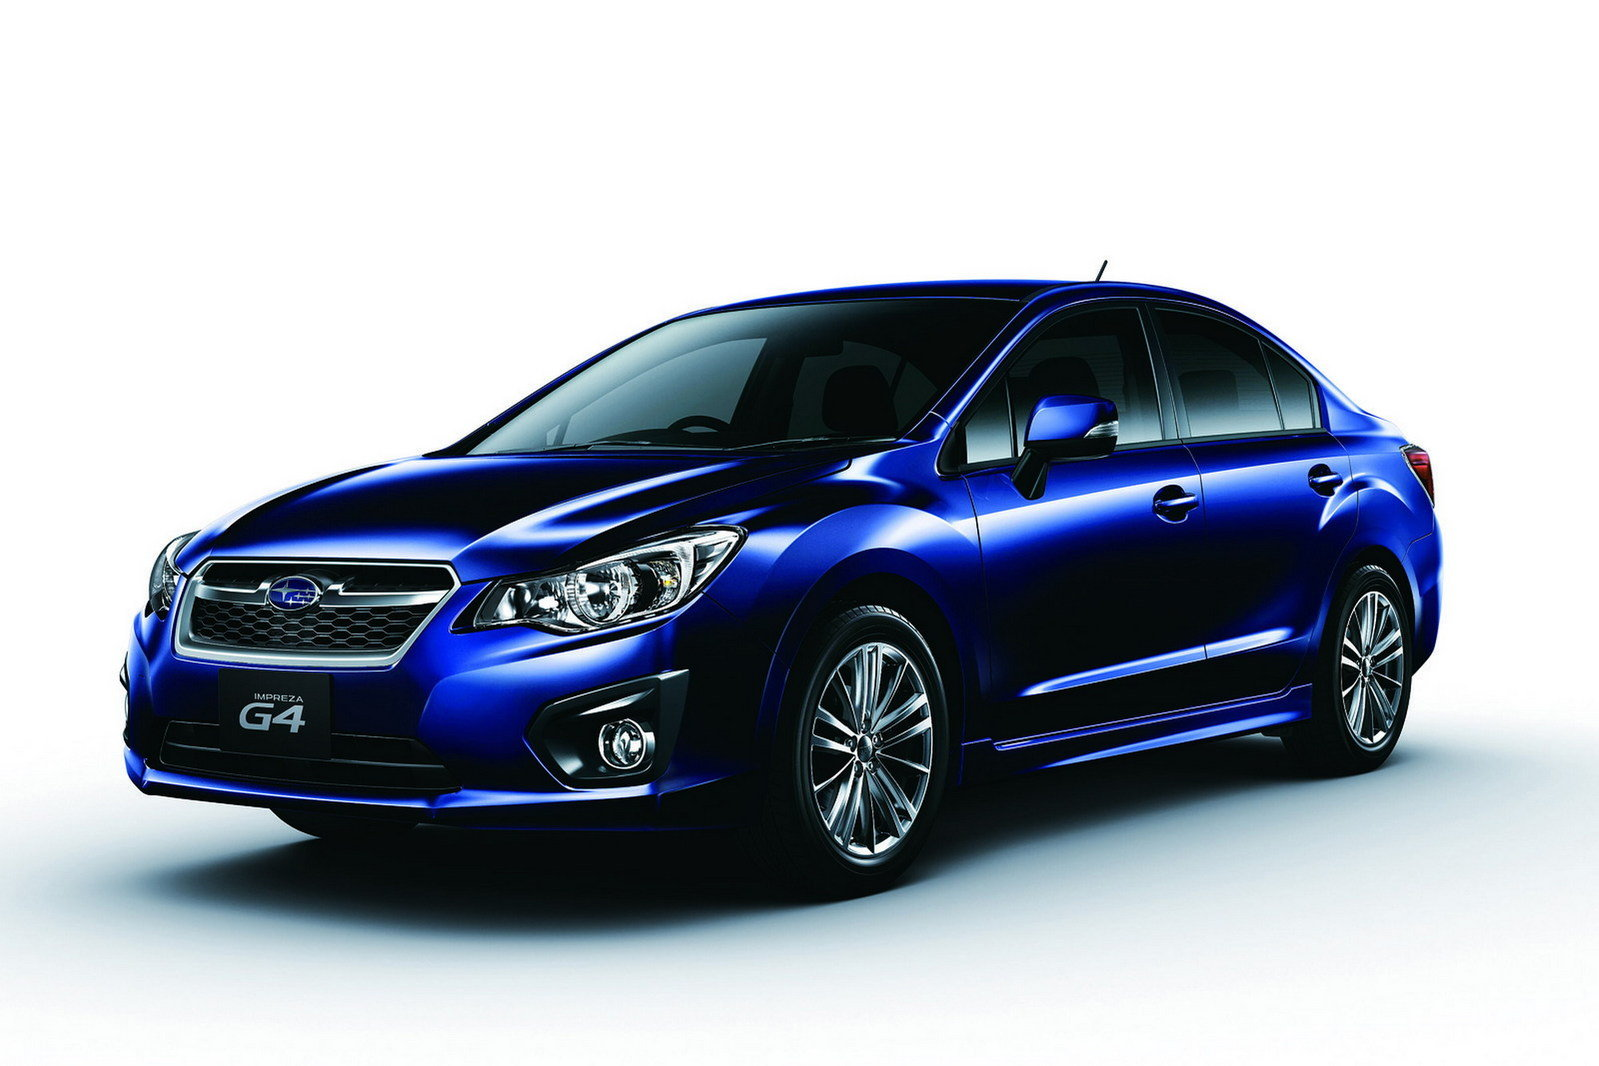 2012 subaru impreza sport and g4 picture 428383 car review top speed. Black Bedroom Furniture Sets. Home Design Ideas